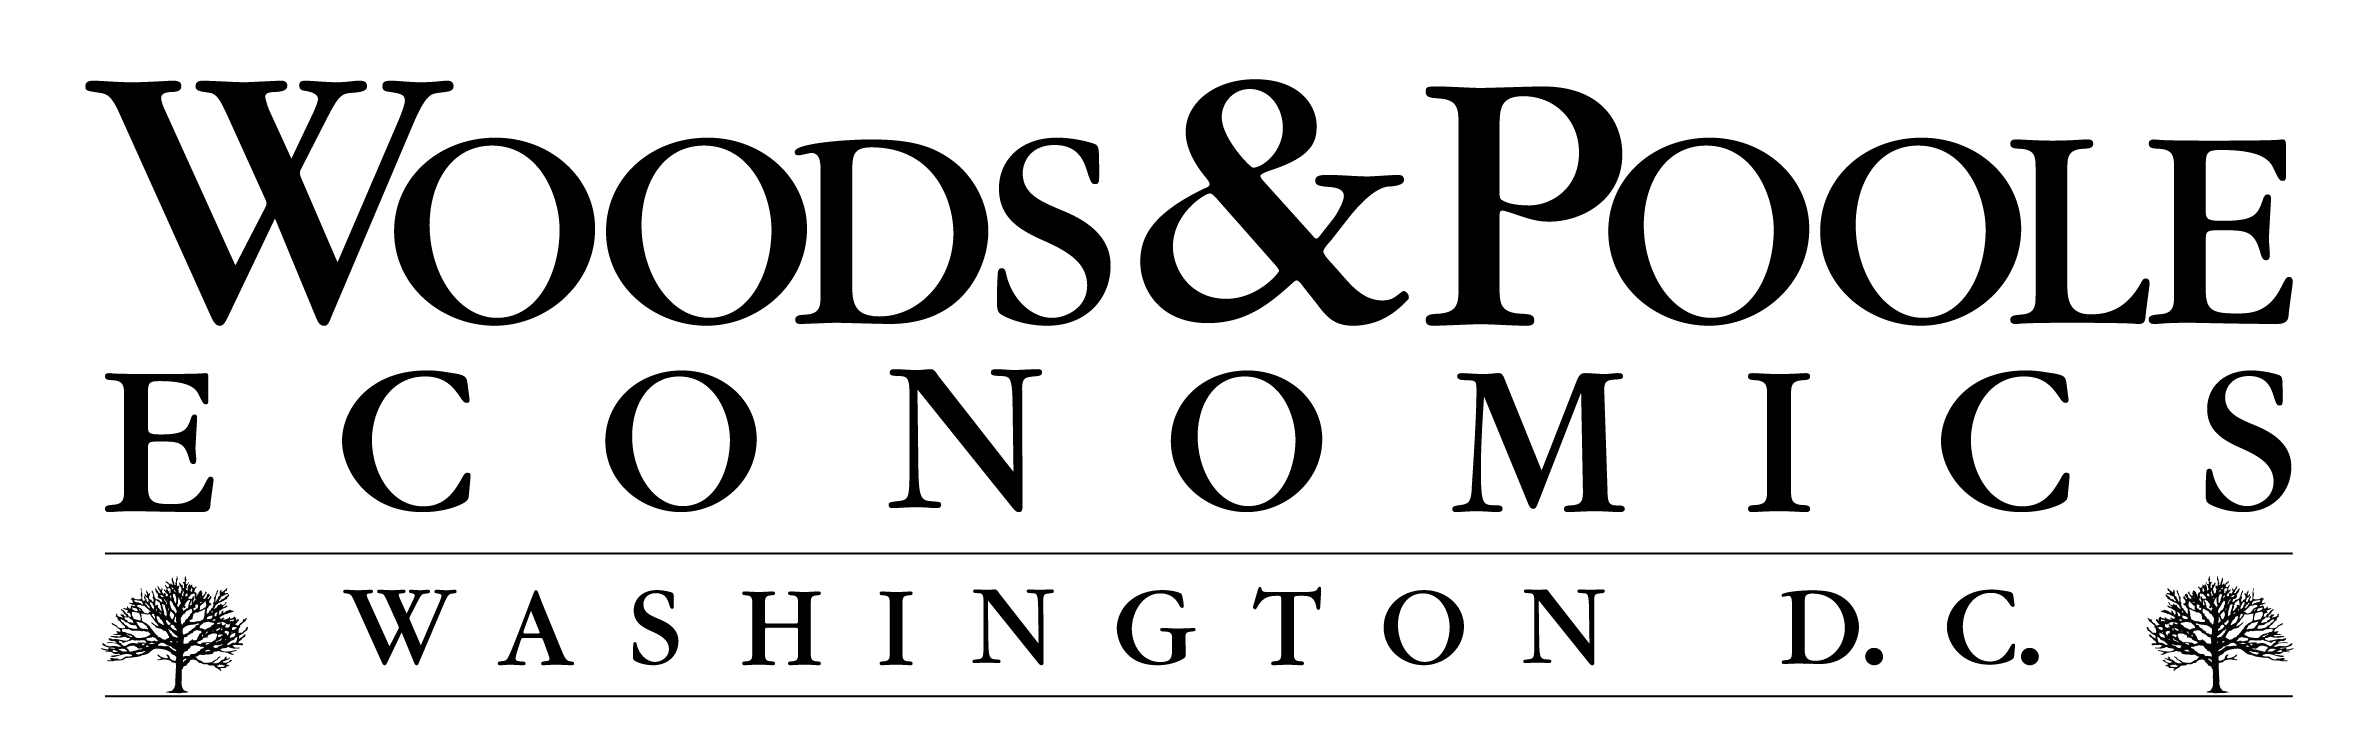 District of Columbia | Woods & Poole Economics, Inc